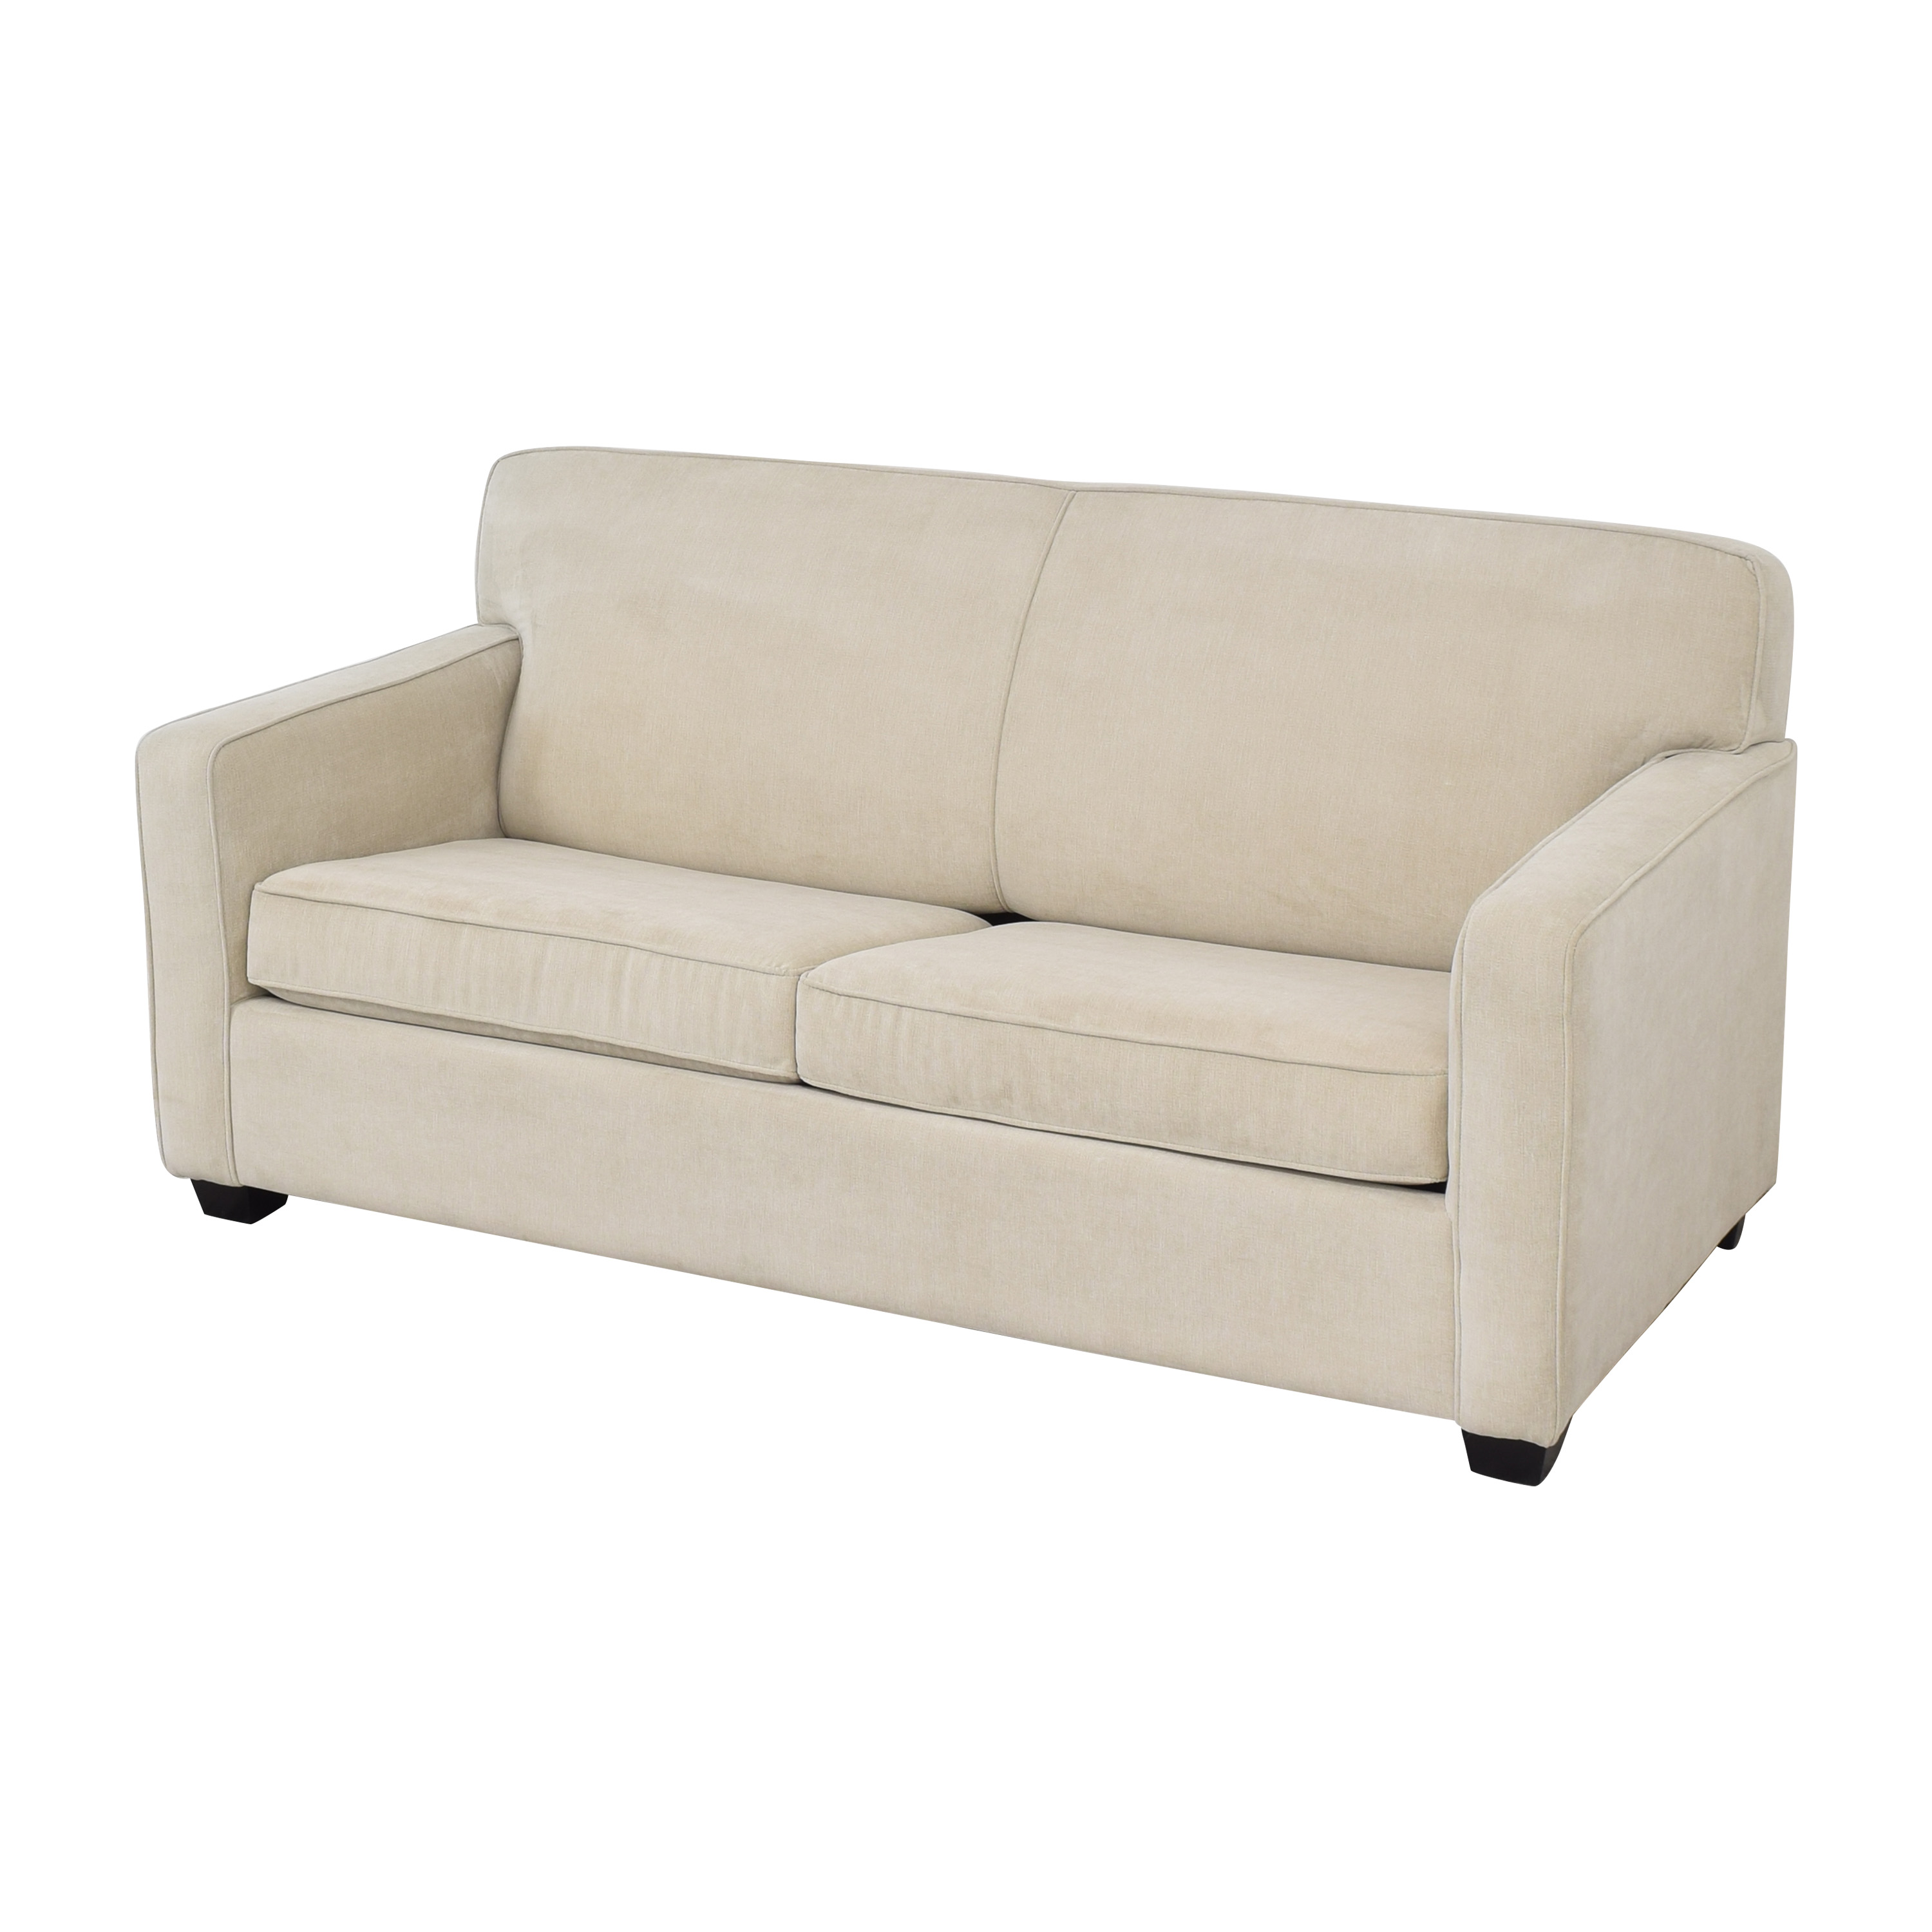 Two Cushion Sleeper Sofa with Pillows / Sofa Beds